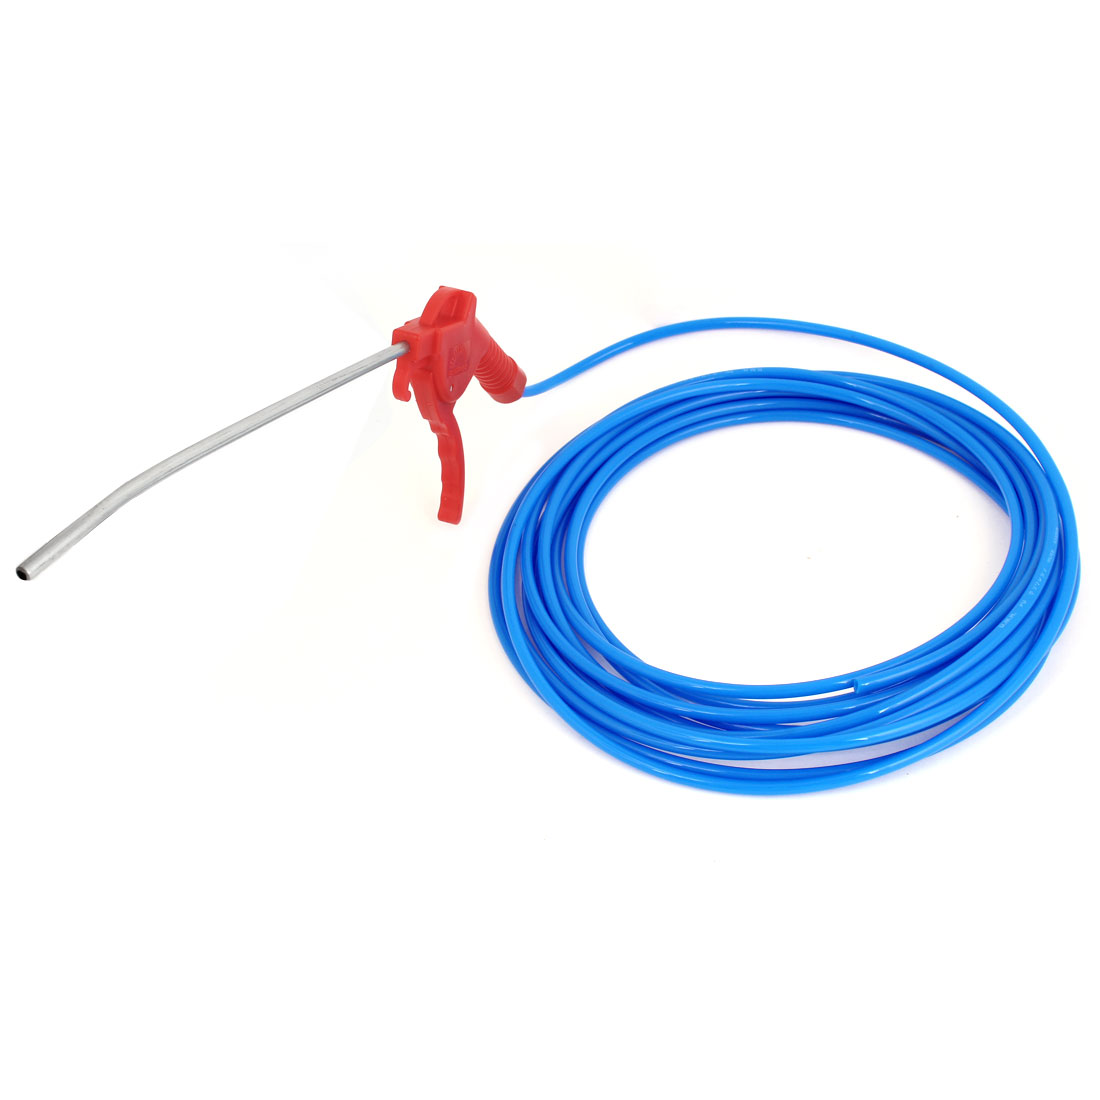 Red Plastic Trigger High Pressure Air Blowing Gun + Blue 4mm Inner Dia Hose Tube 8Meters